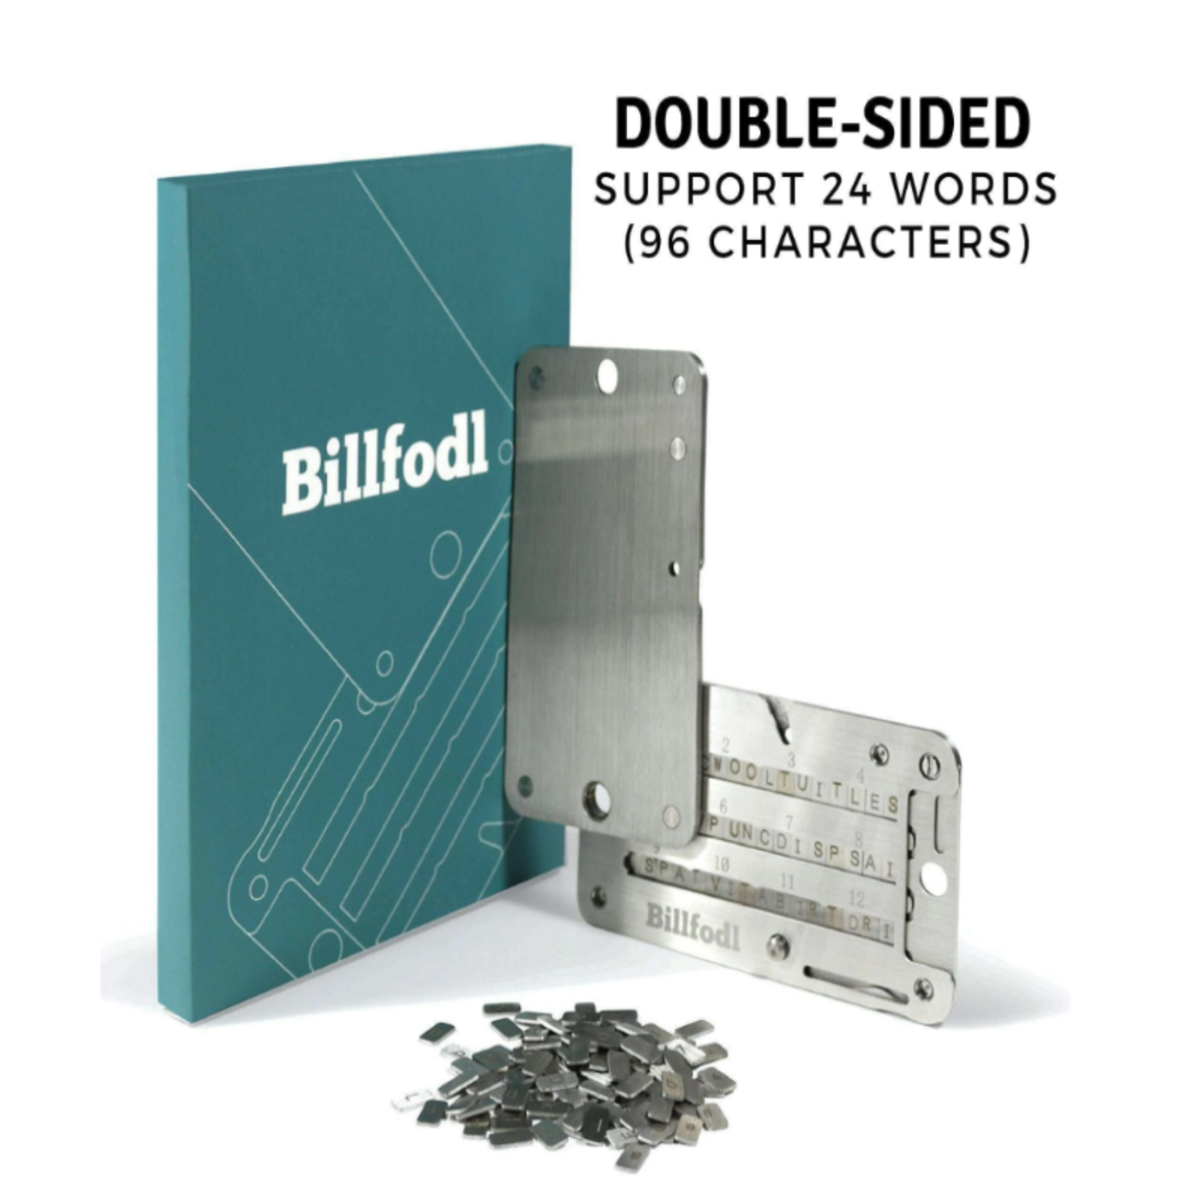 Billfodl is an easy hardware tool to help protect private keys and other info related to bitcoin wallets.